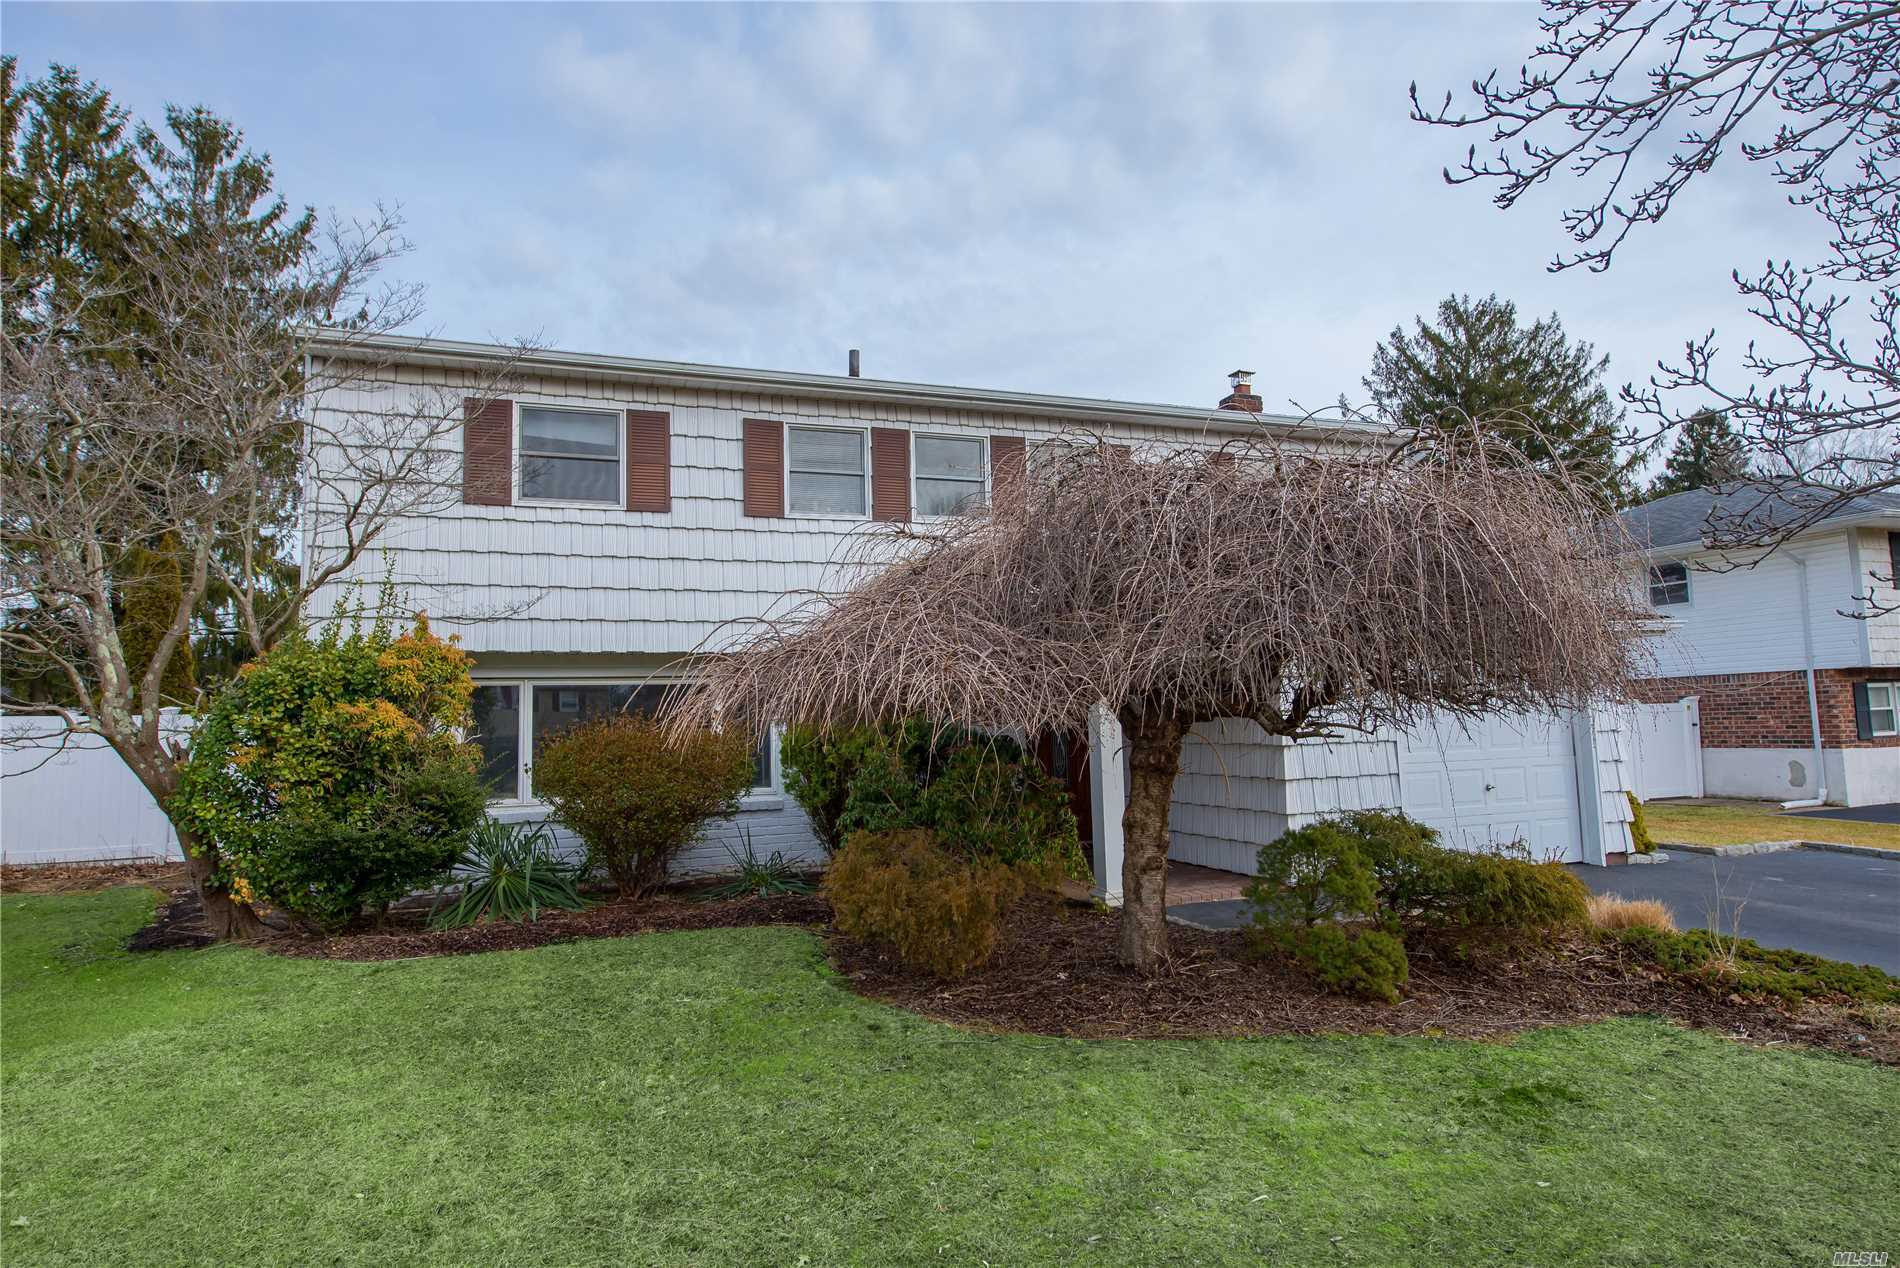 Split Style Home W/3 Bedrms, 2.5 Baths, Formal Living Rm, Eat In Kitchen, Dining Area, Laundry, Den, Master Bedrm W/Master Bath, Attached 1 Car Garage W/Inside Entry. Laundry Room, Cathedral Ceilings, Hardwood Flooring, Large Deck Off Kitchen And Dining Rooms, 2 Sets Sliding Doors To Deck, Recessed Lighting Throughout, Gas Heat, 3 Built In A/C Units, Skylight, Oversized Blacktop Driveway, 10 Year Roof, Inground Sprinklers, Pvc Fenced Flat Backyard.